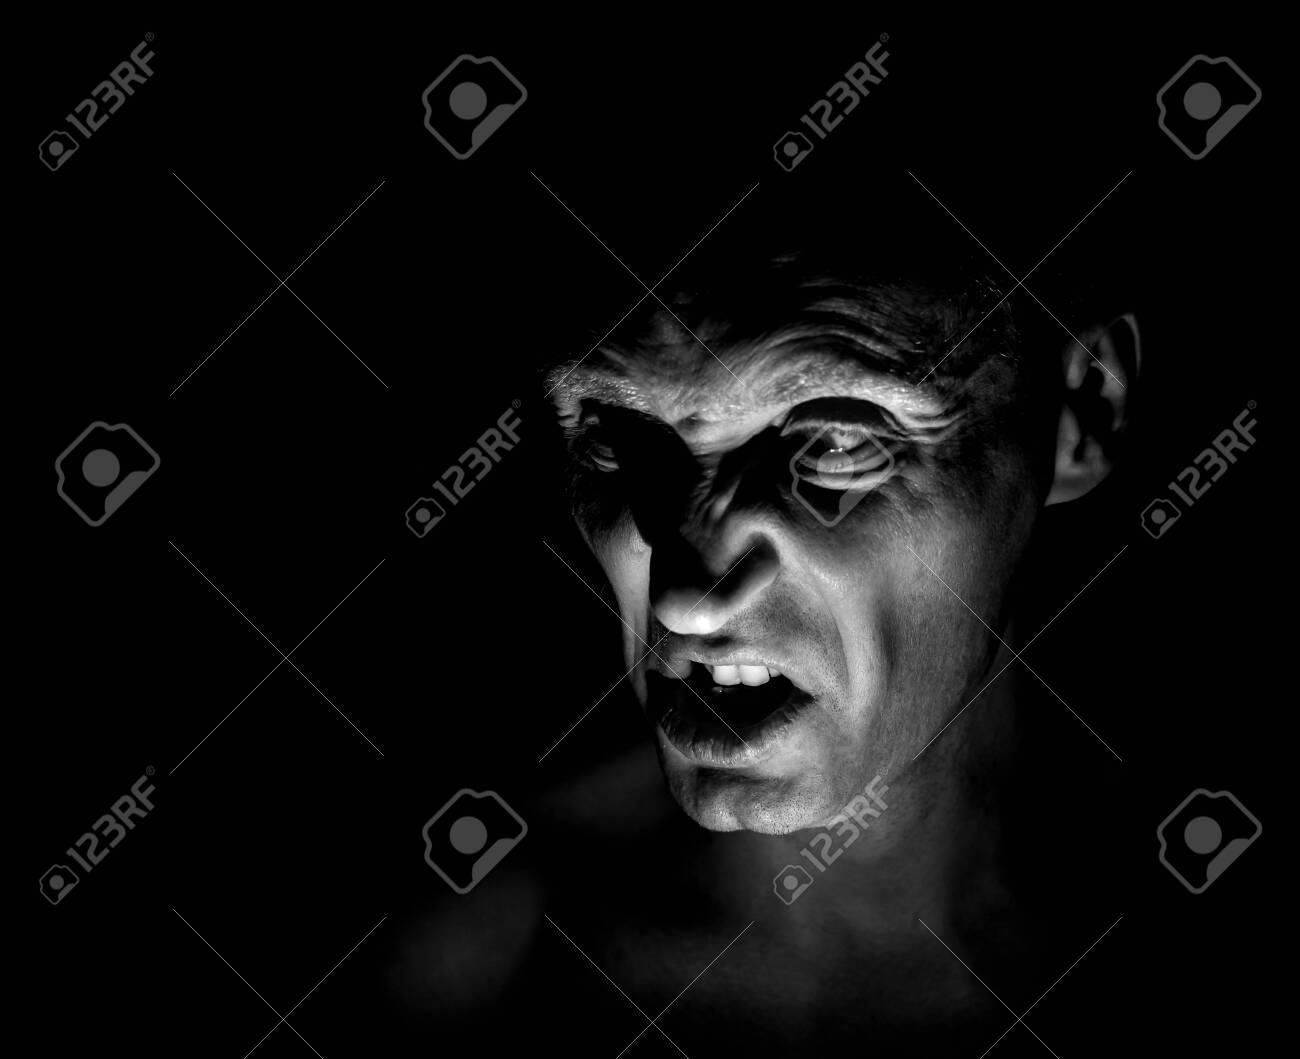 Stylish portrait of adult caucasian man with very angry face and who seems like maniac or devil. He screams at someone. Black and white shot, low-key lighting. Angry man, fear concept. - 122083355